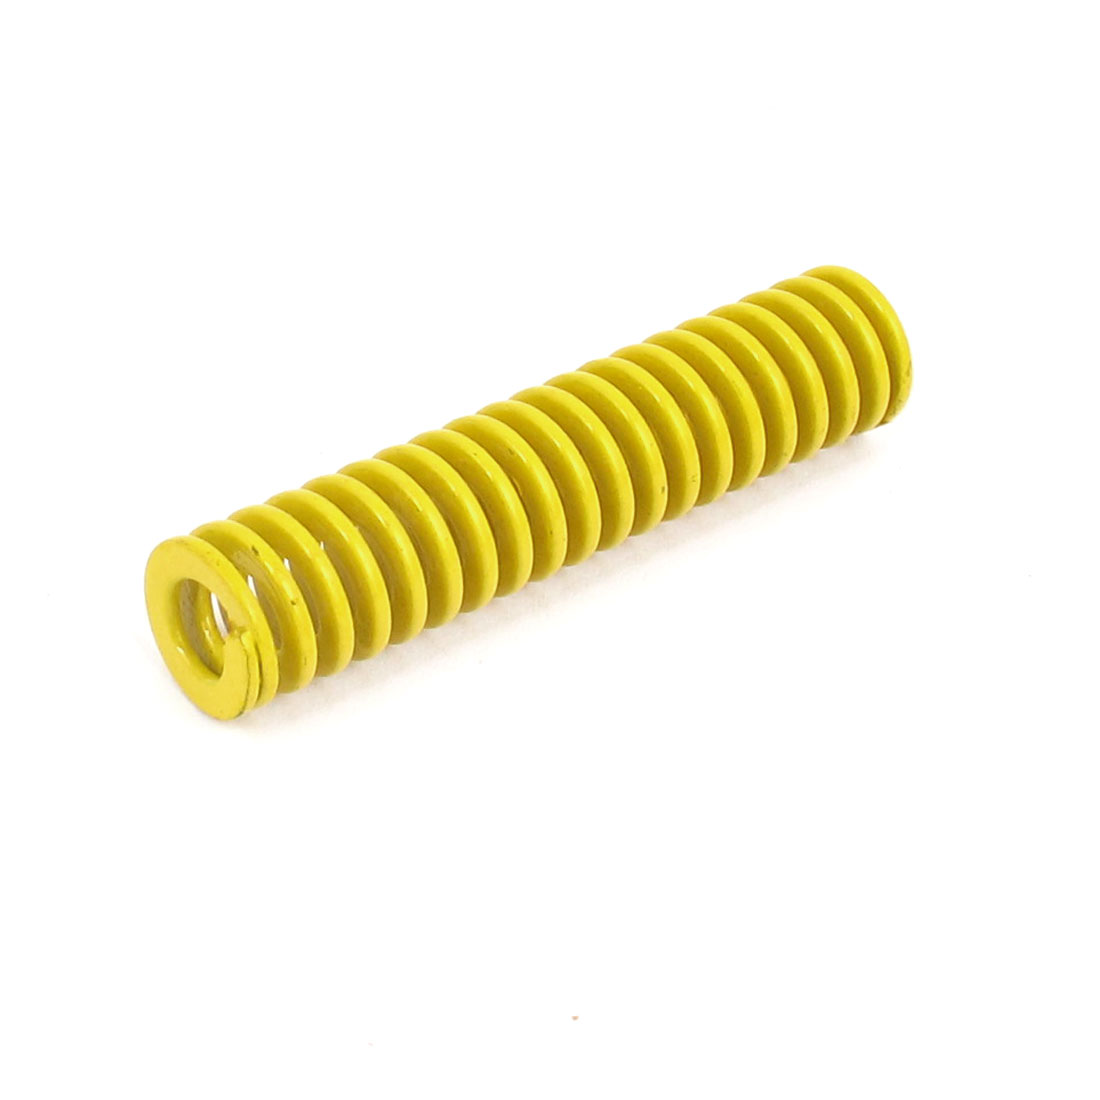 12mm OD 55mm Long Lightest Load Spiral Stamping Compression Die Spring Yellow